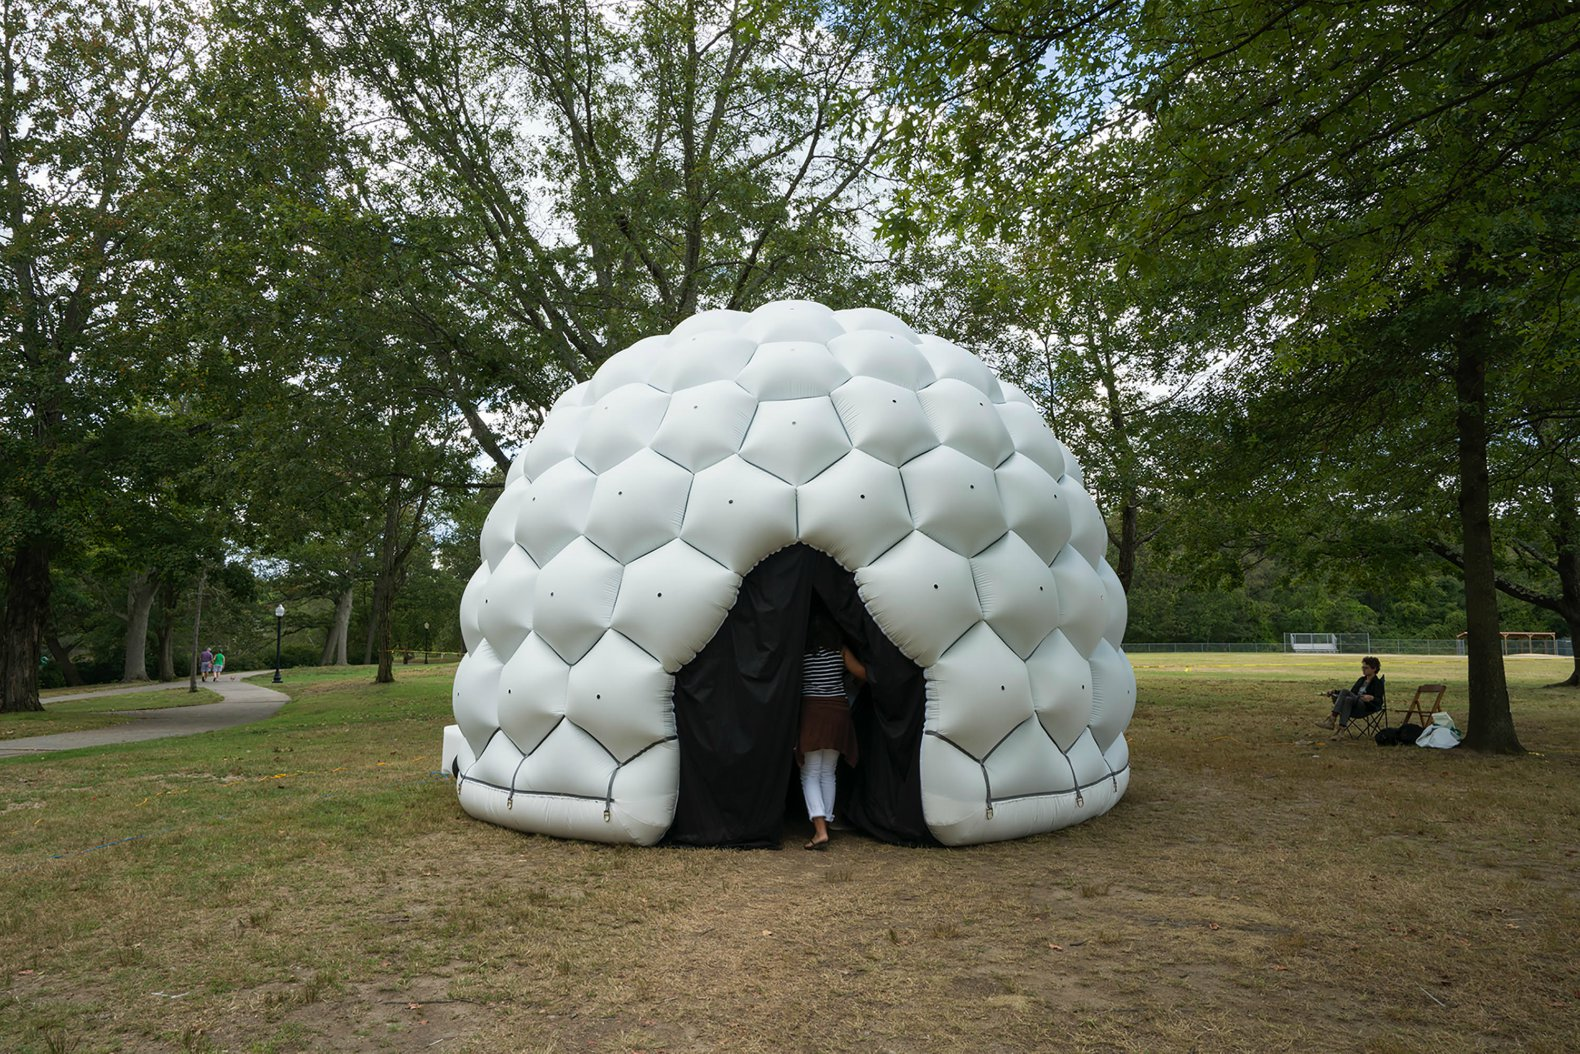 This giant inflatable dome is made of hundreds of tiny pinhole cameras